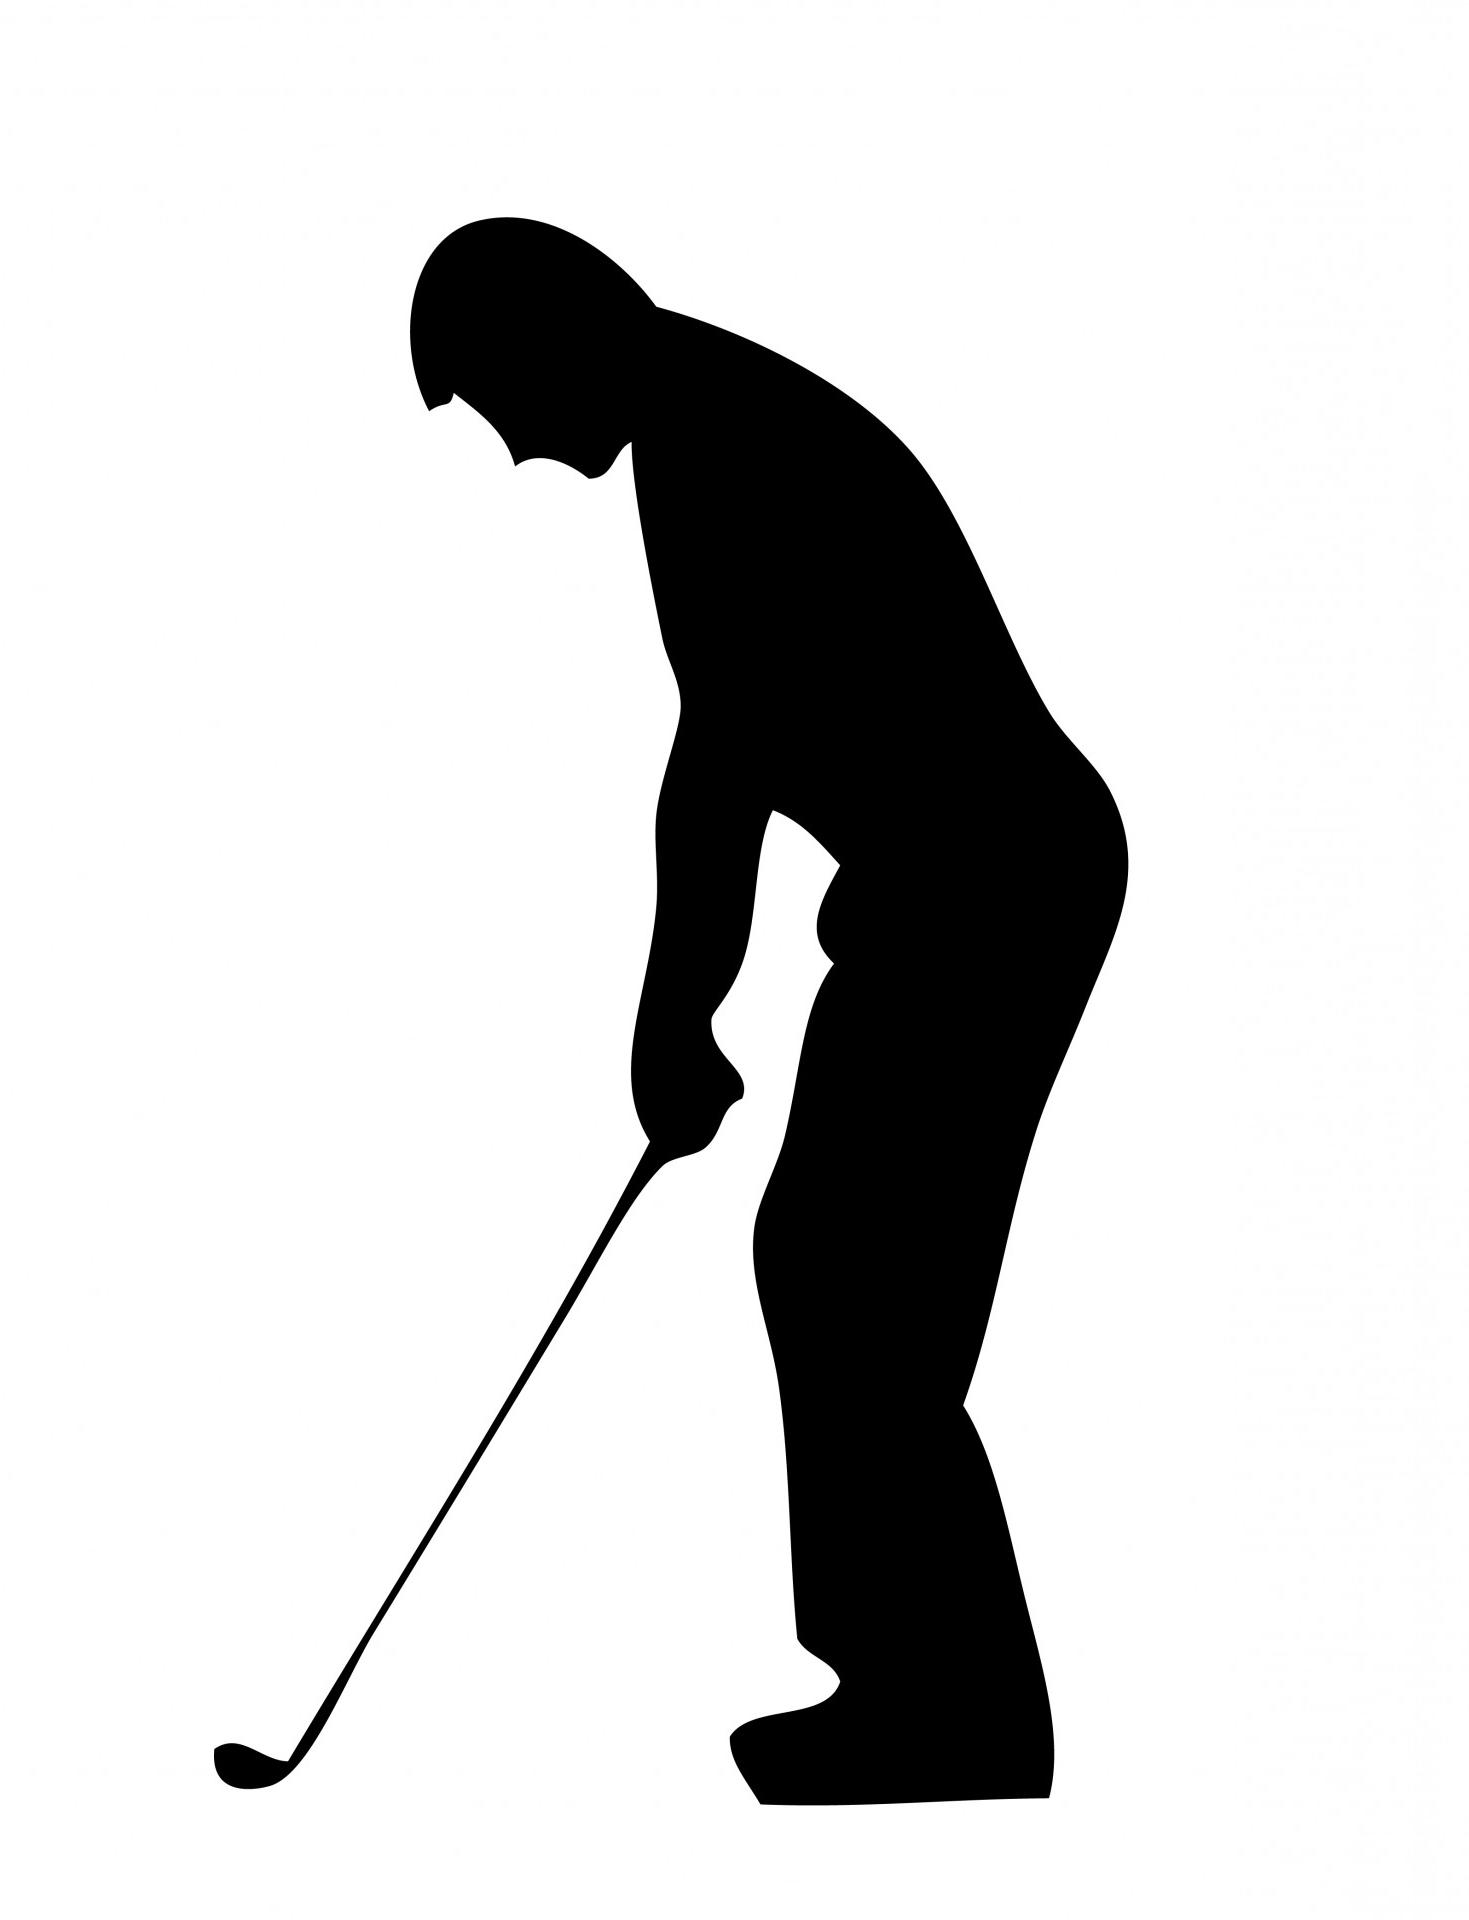 1469x1920 Best 15 Golf Player Silhouette Clipart Images